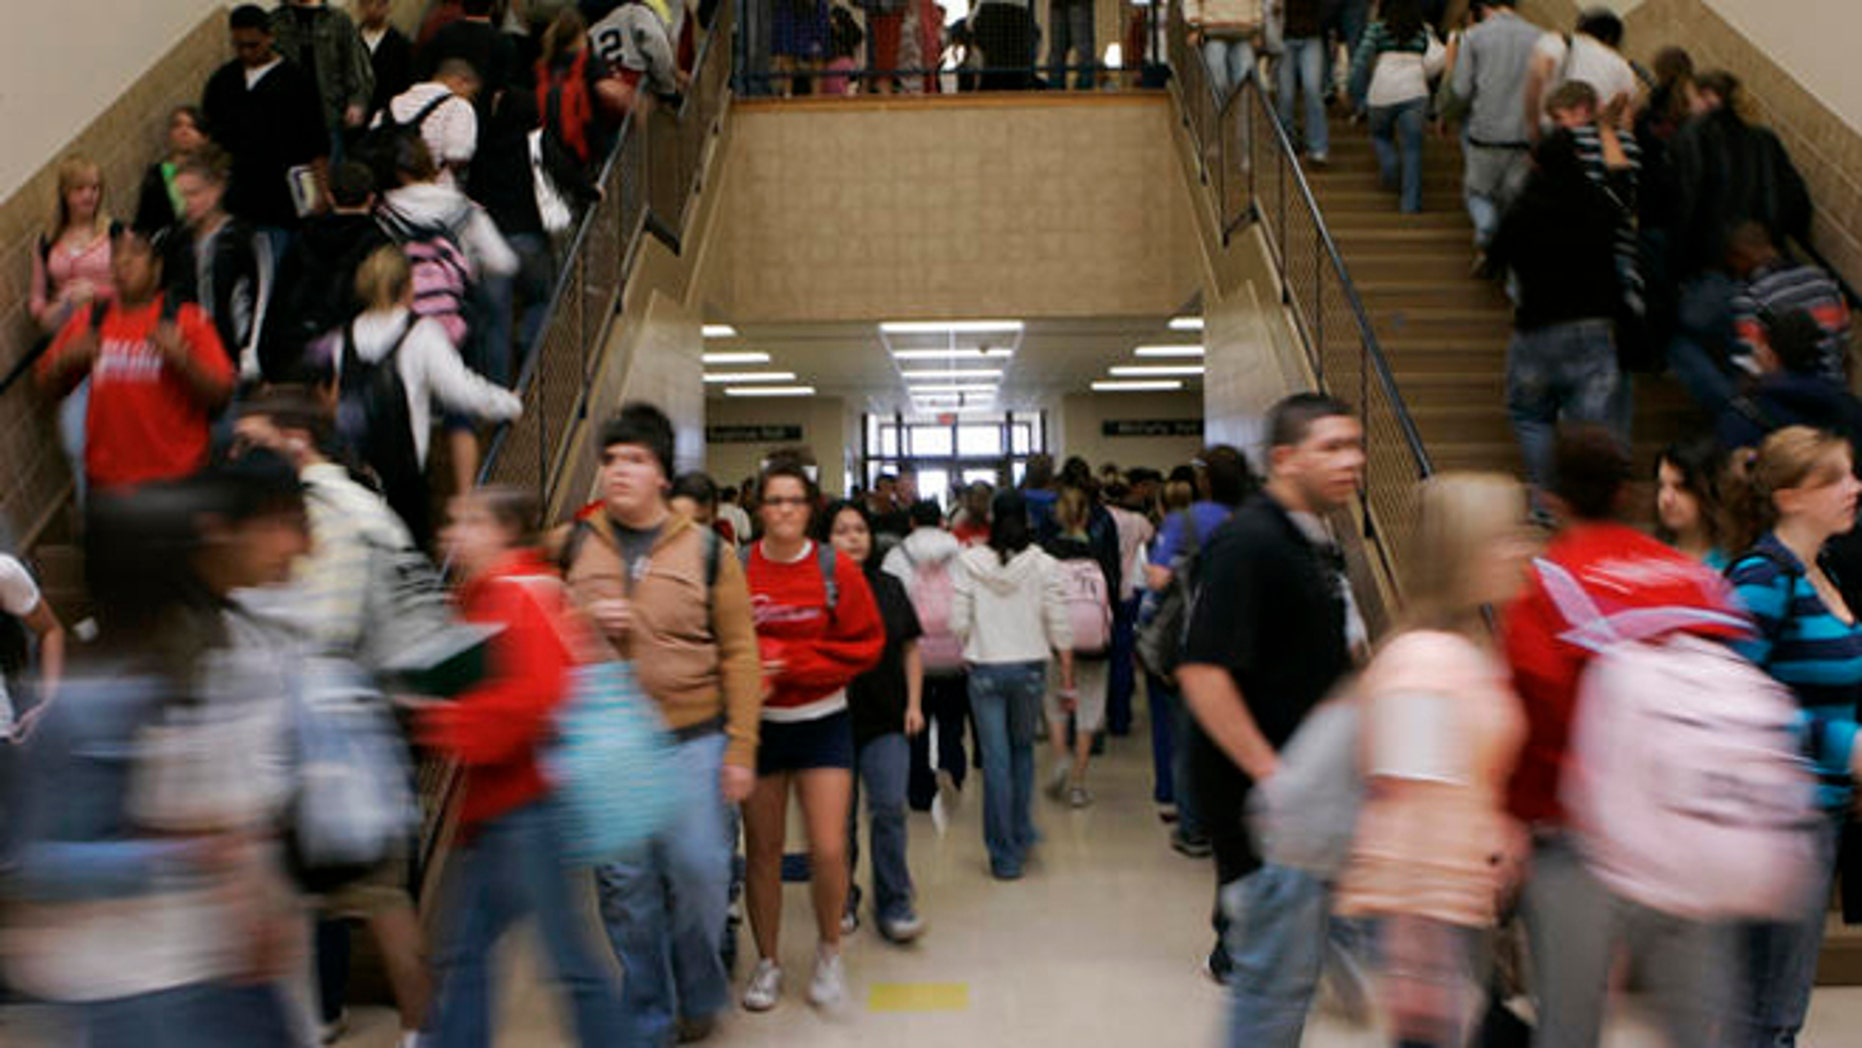 ** ADVANCE FOR SUNDAY, AUG. 19 **Students move between classes at Dodge City High School in Dodge City, Kan., Wednesday, April 4, 2007. Seventy per cent of the students at the school are Hispanic. (AP Photo/Orlin Wagner)